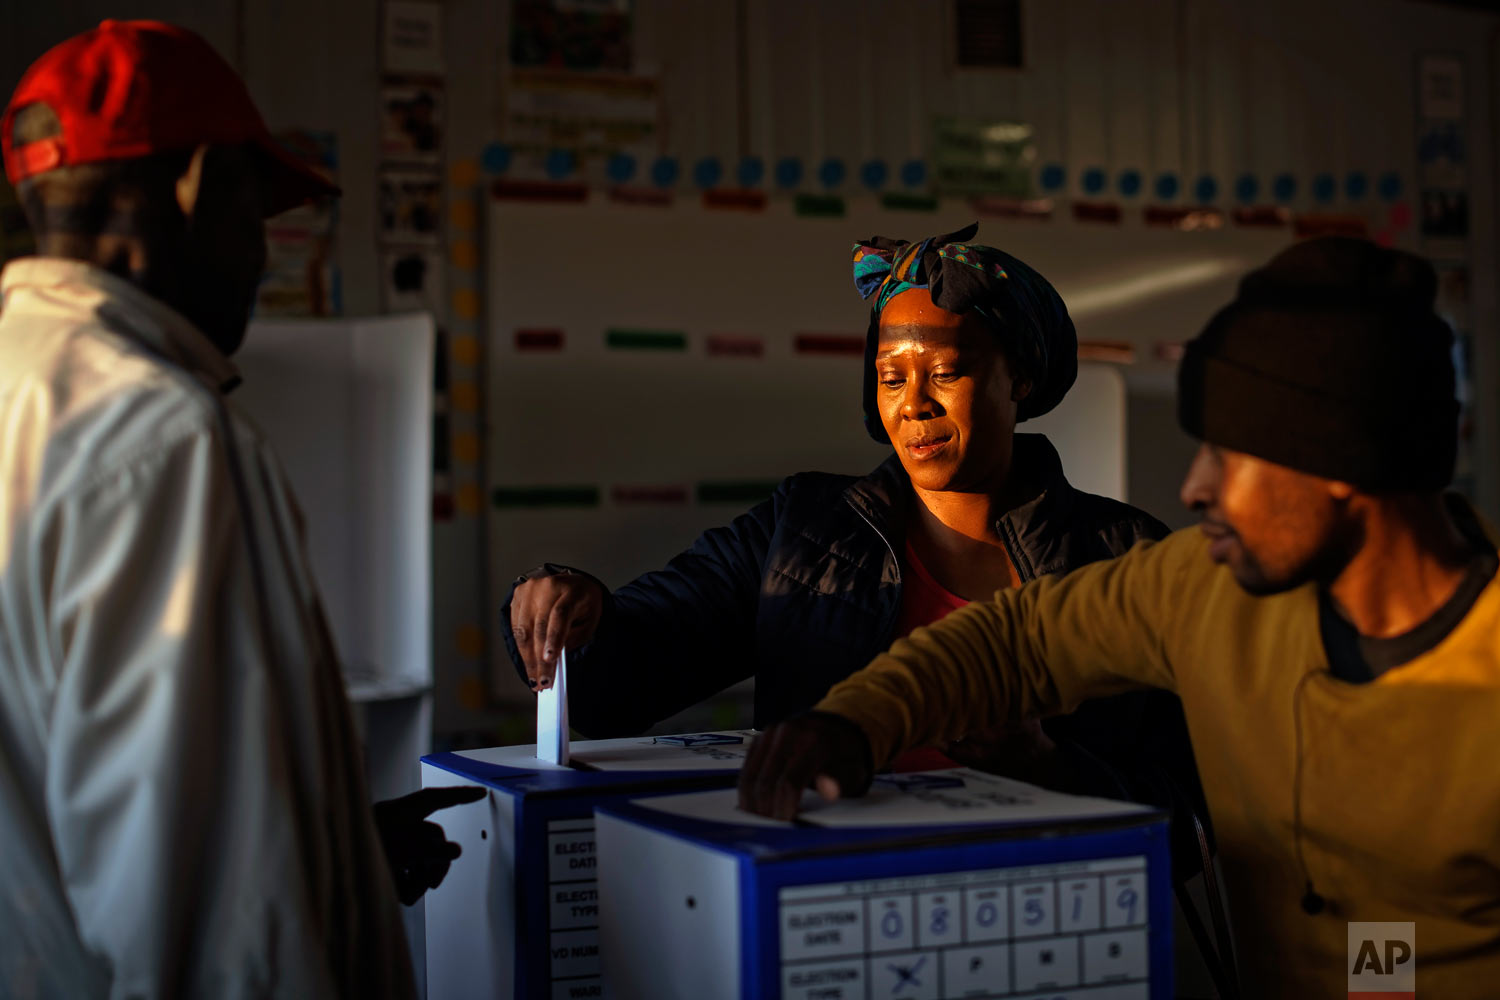 A South African woman casts her vote at the end of the day at a polling station in Dobsonville, Johannesburg, South Africa, May 8, 2019. (AP Photo/Ben Curtis)